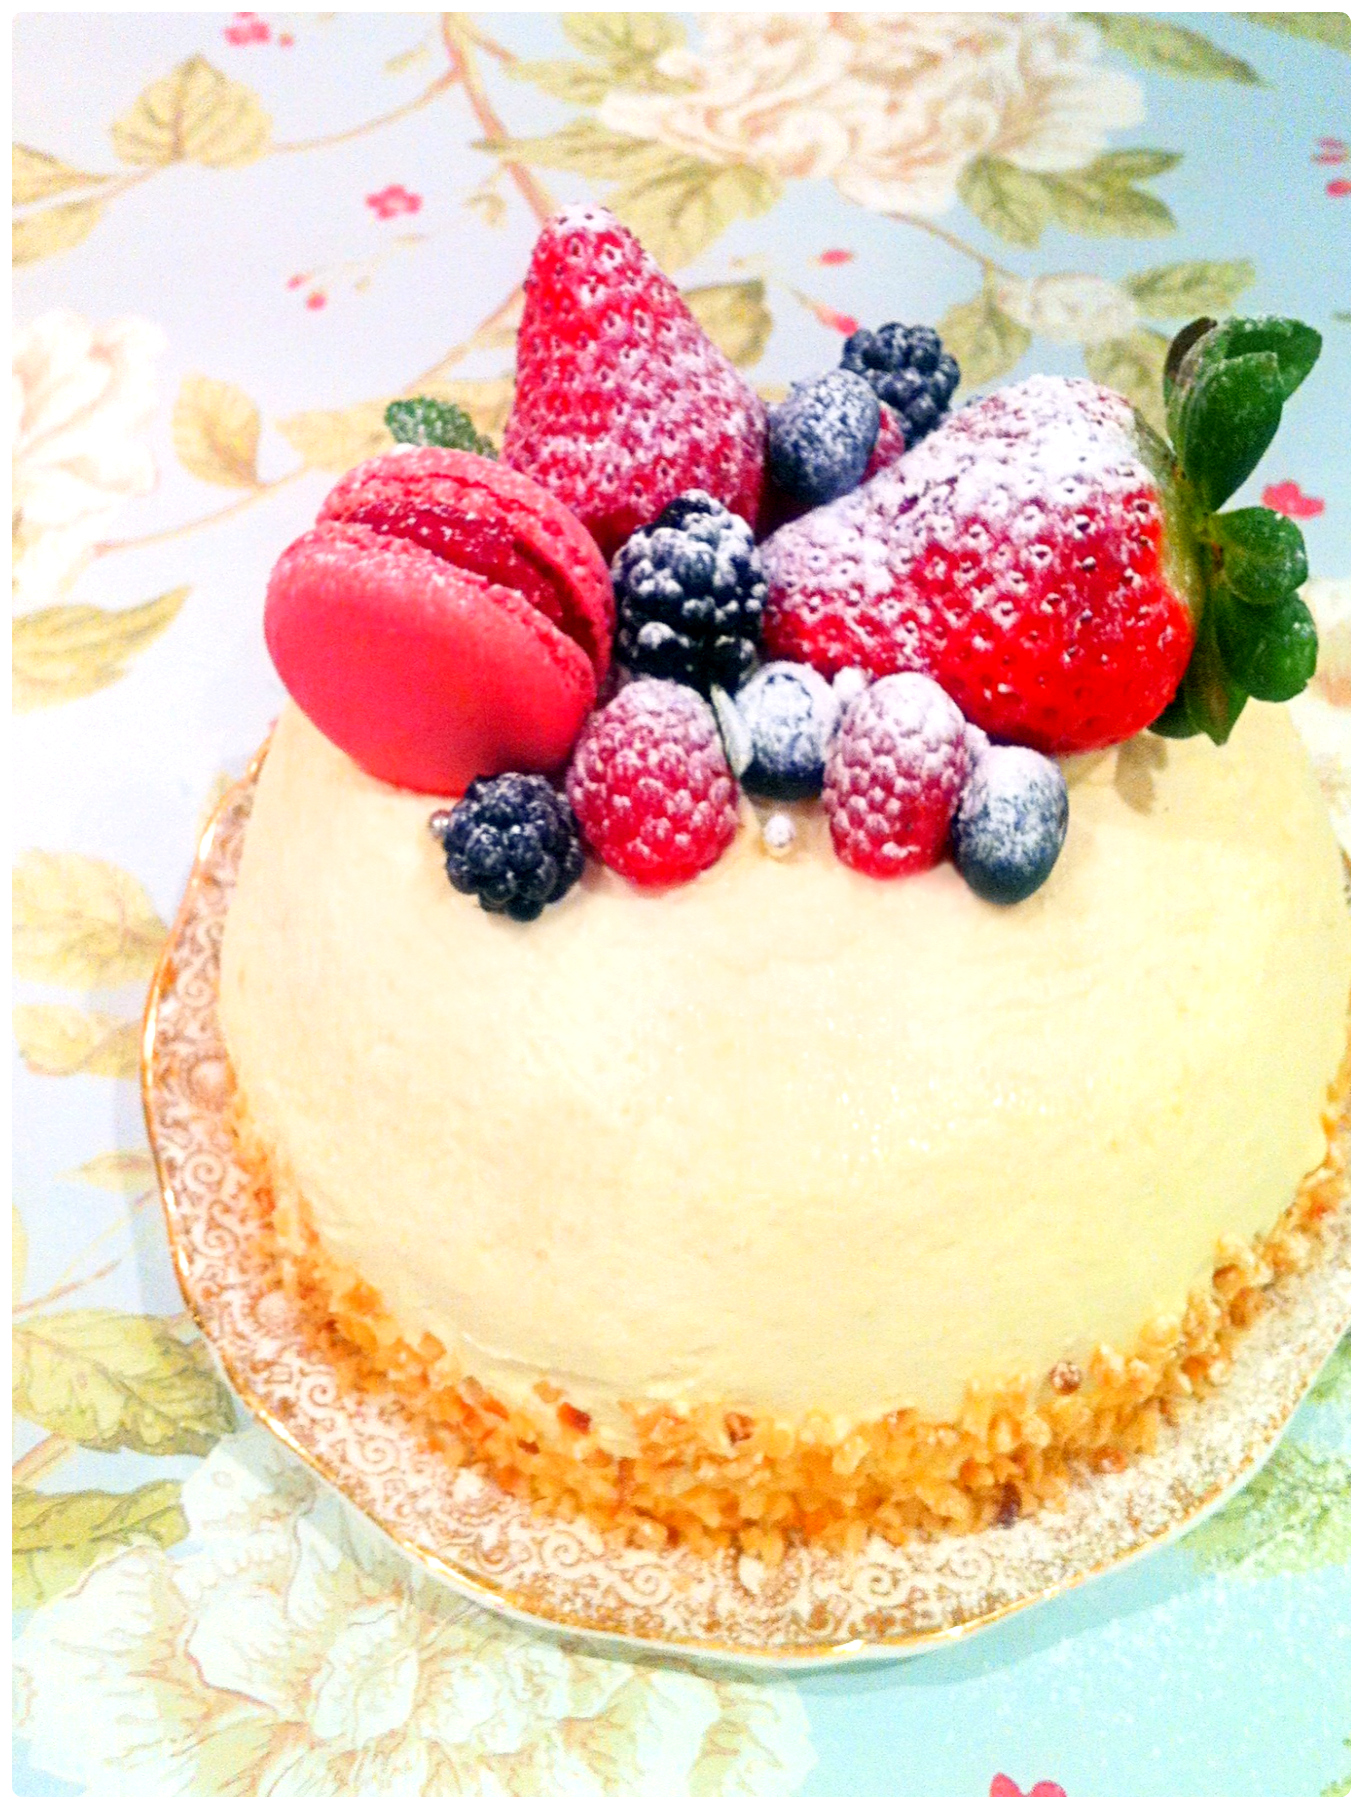 Lychee Mousse Dome Birthday Cake London Cherie Kelly